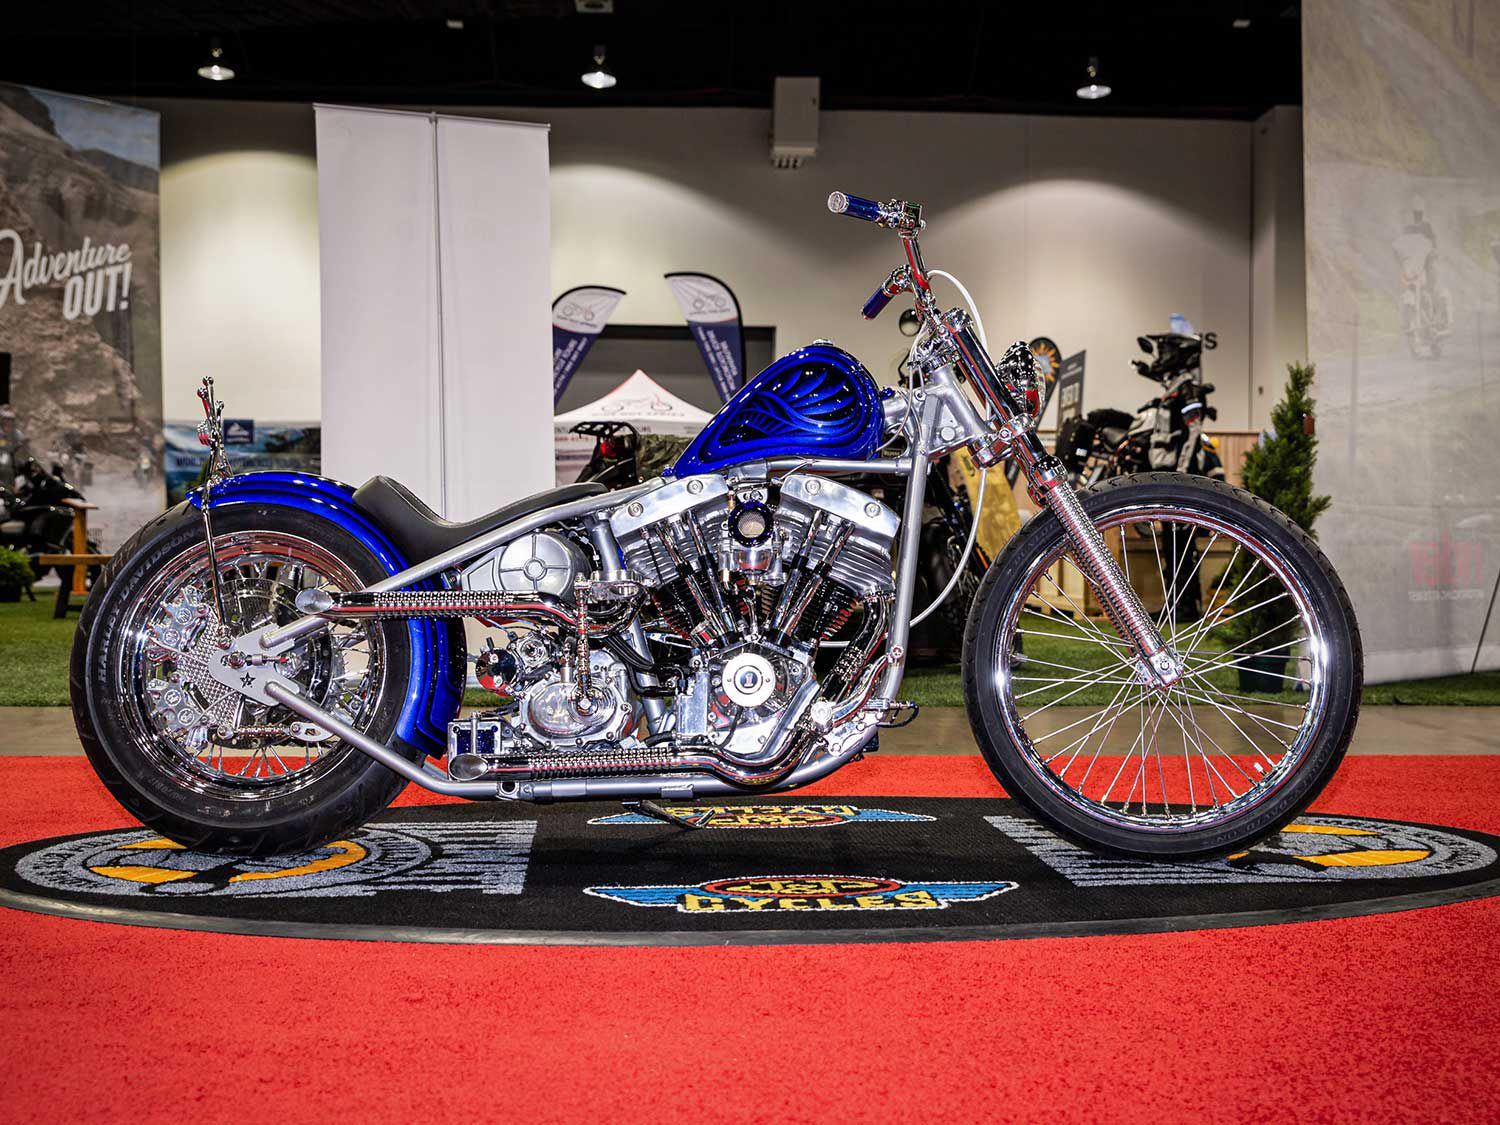 Paper Street Customs' Ryan Gore got runner-up in the Freestyle category with a 1978 Harley-Davidson Shovelhead capped by a handmade tank, stainless sissy bar, stained glass battery box, and suede seat by Curt Green on a hardtail frame (as mentioned before, Jordan Dickinson won first in the category).